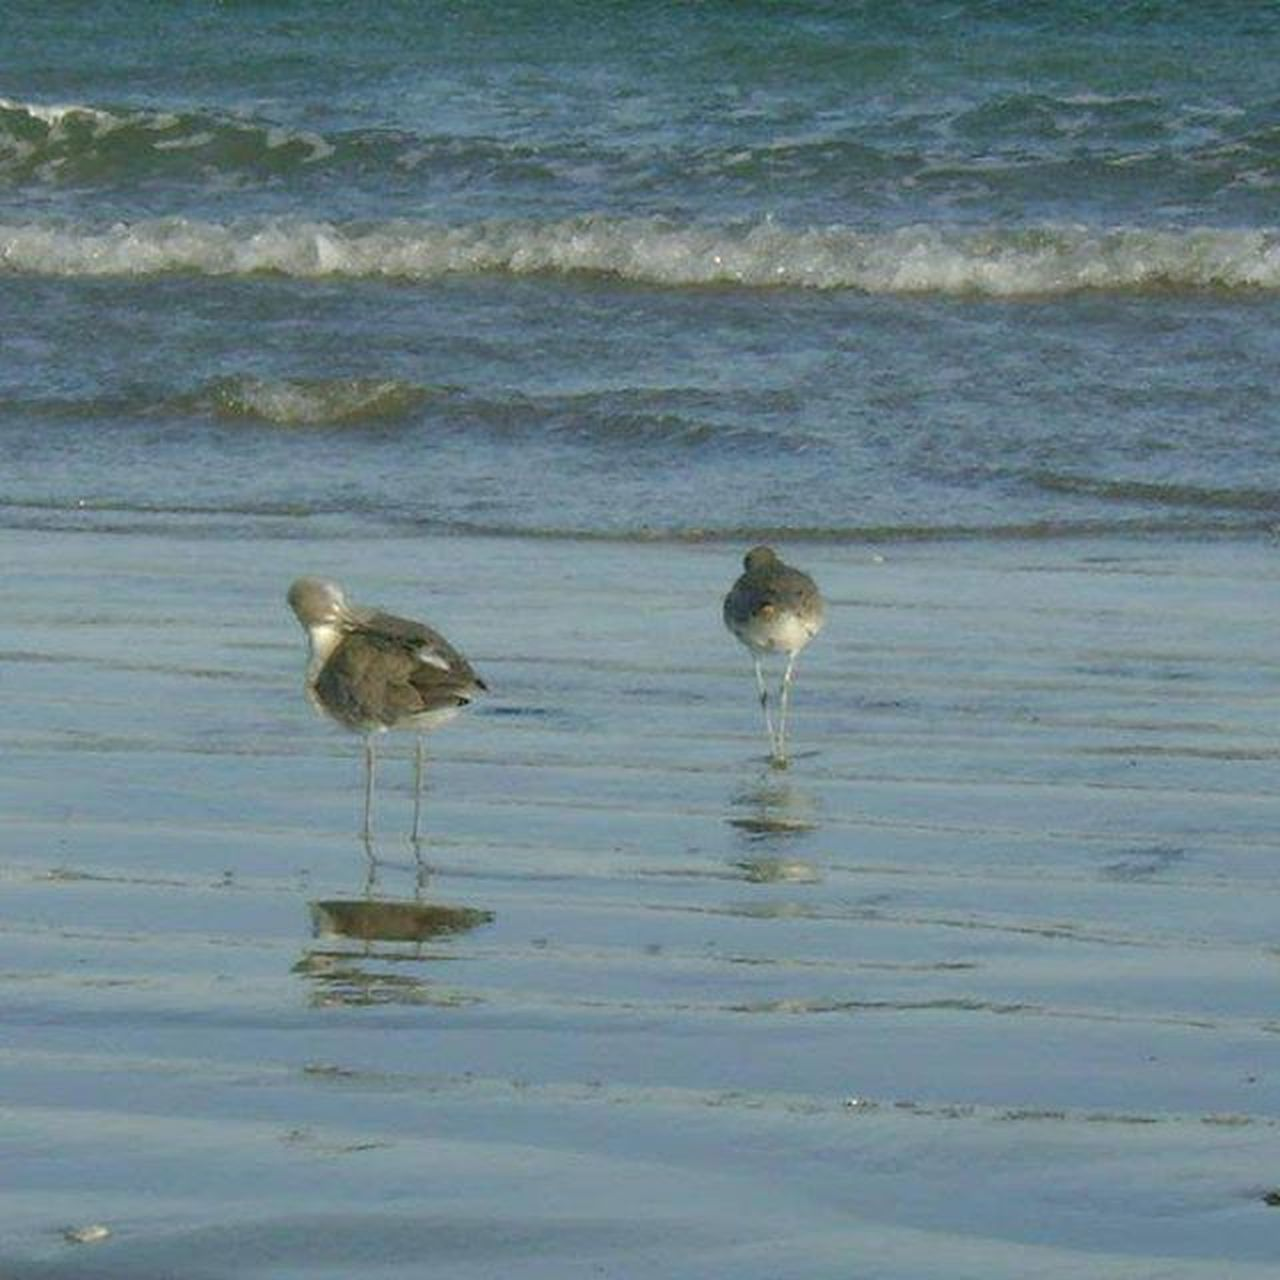 bird, water, animals in the wild, animal wildlife, animal themes, nature, no people, day, outdoors, beauty in nature